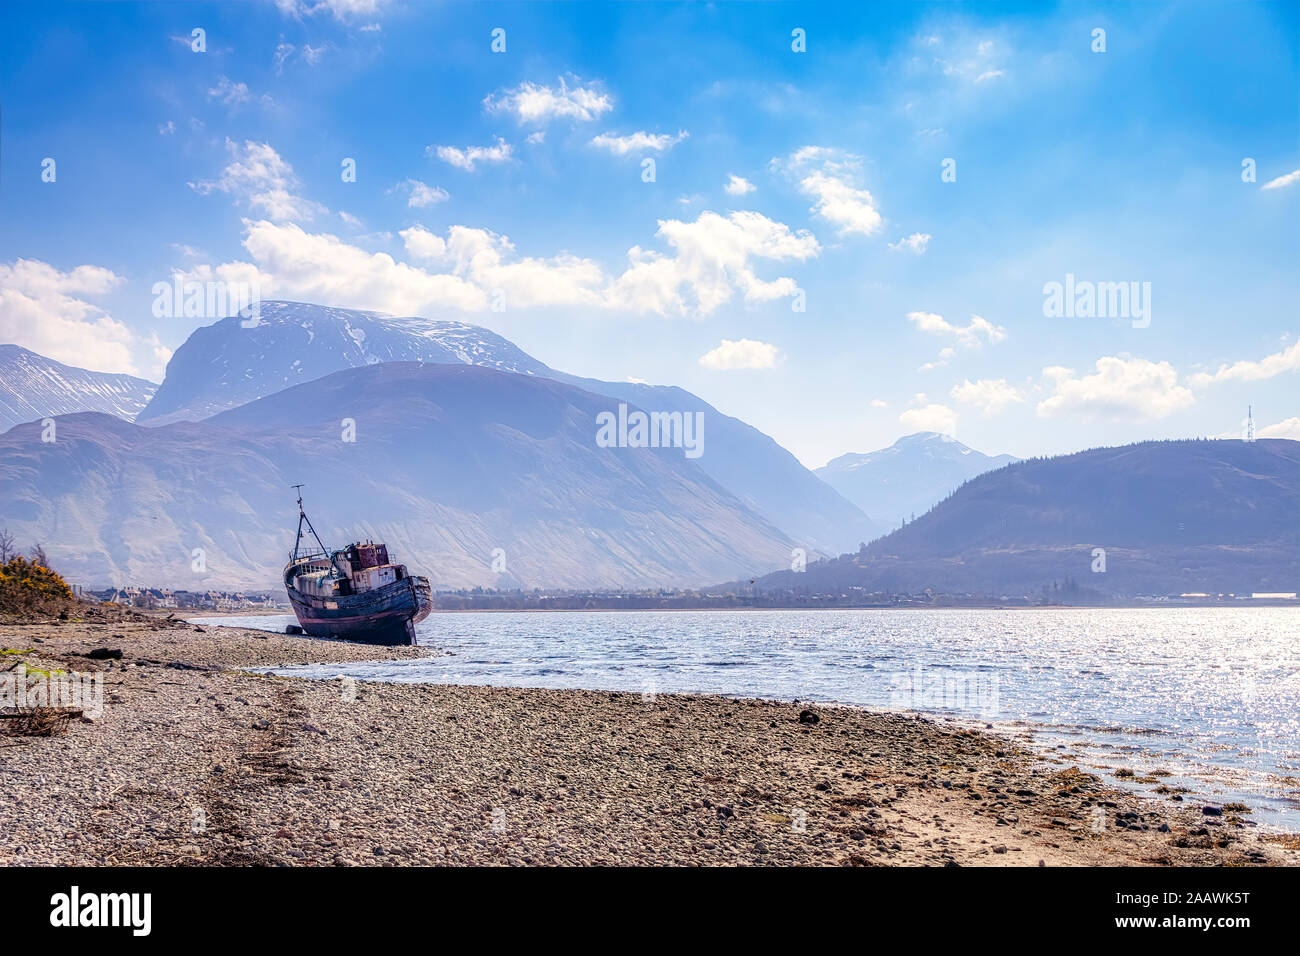 Shipwreck at Loch Linnhe with Ben Nevis and Fort William in background, Highlands, Scotland, UK Stock Photo